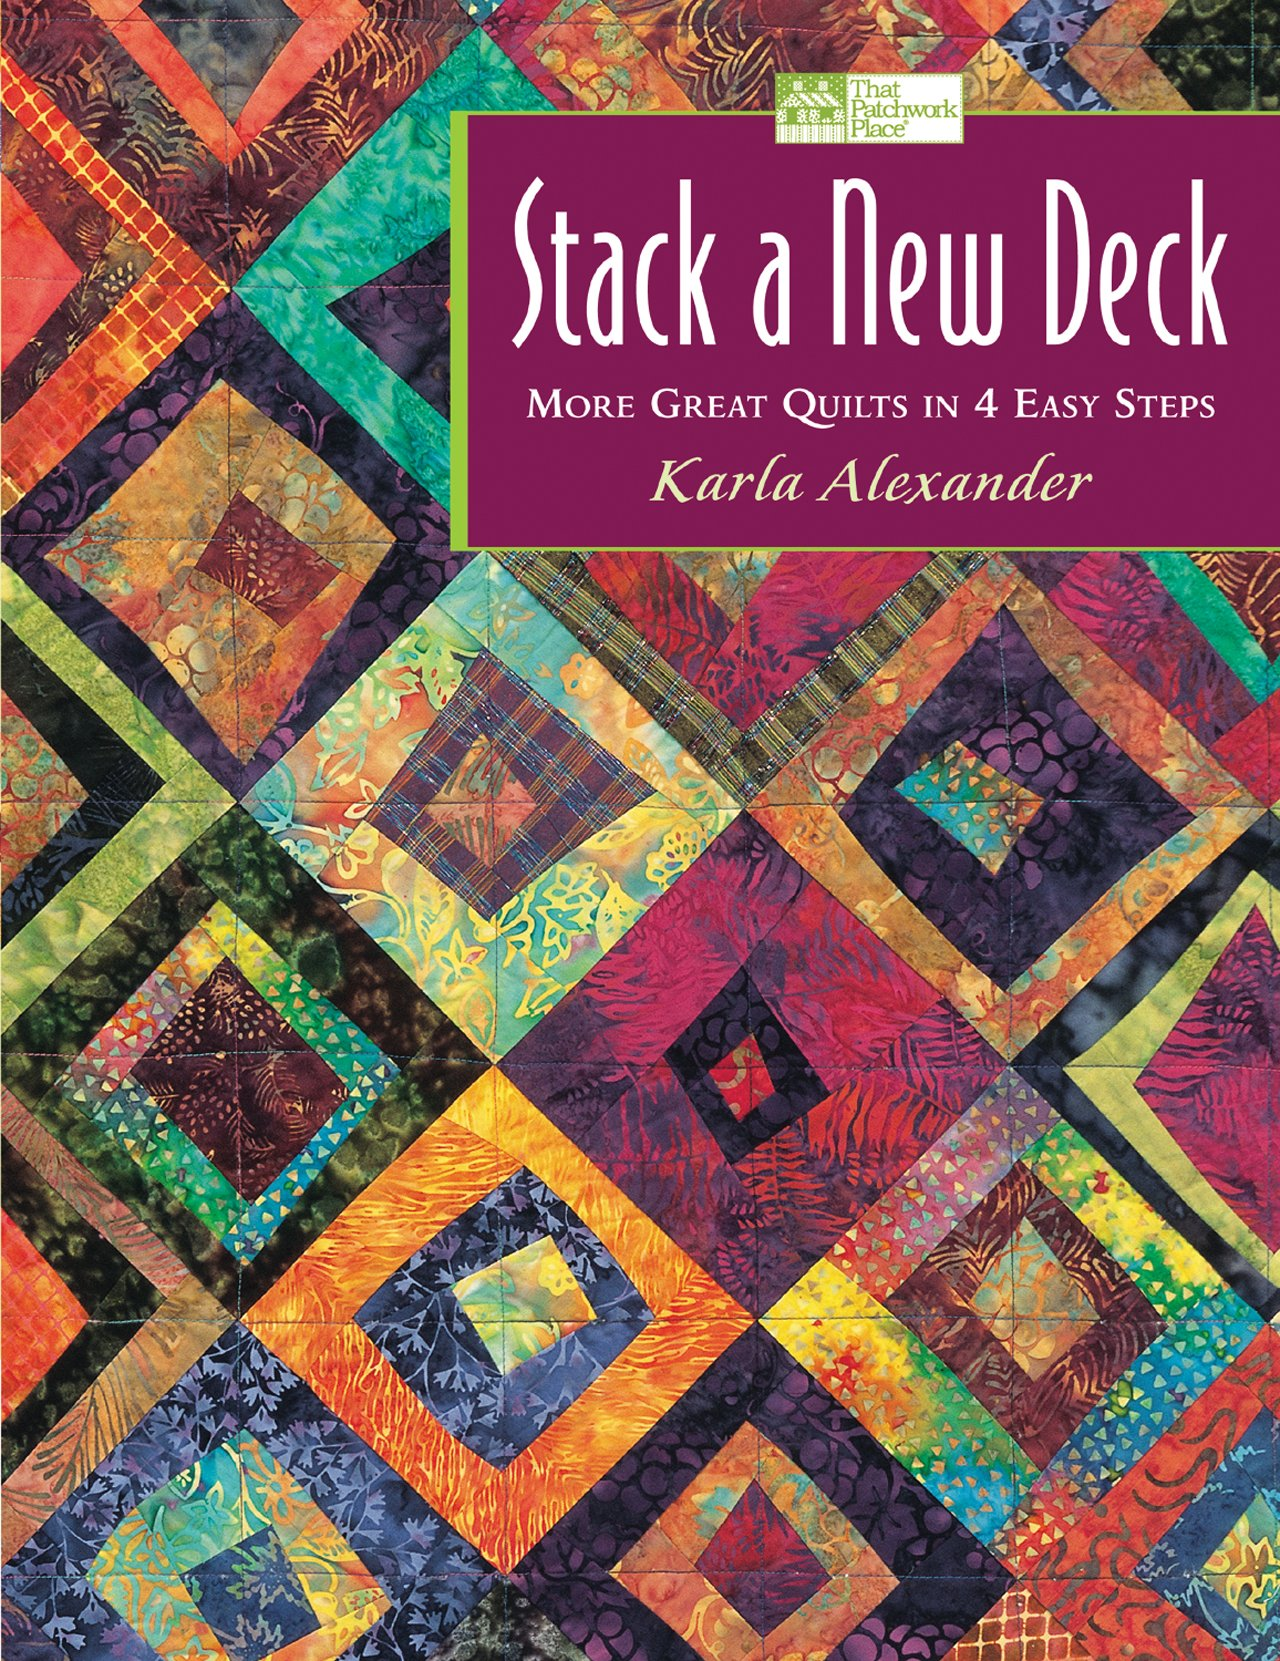 Stack a New Deck: More Great Quilts